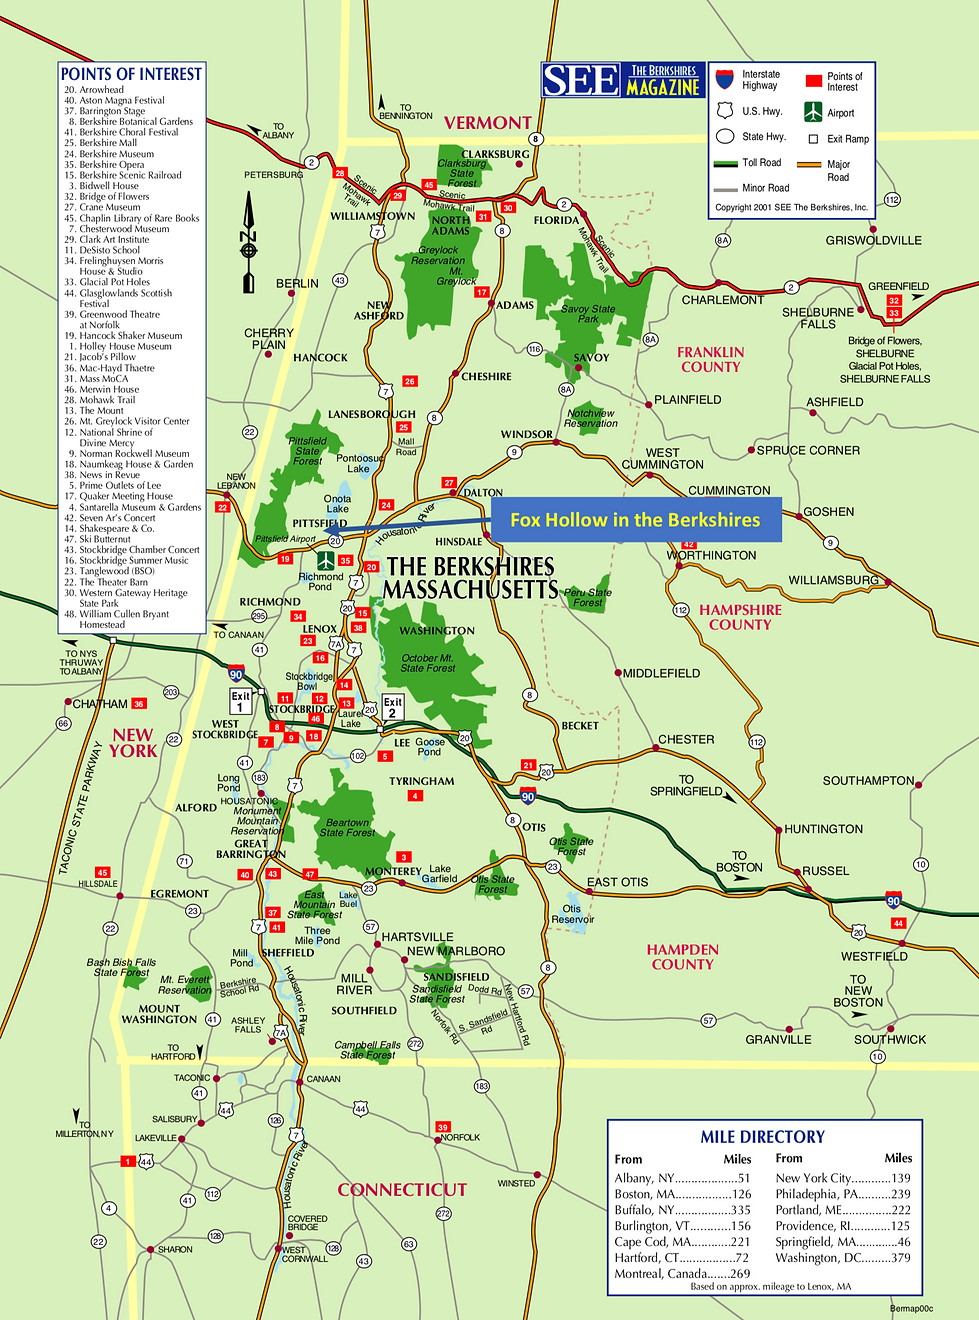 Vacation Rental, Pittsfield, MA, Fox Hollow, Berkshire County, Map, Things to do, favorites,